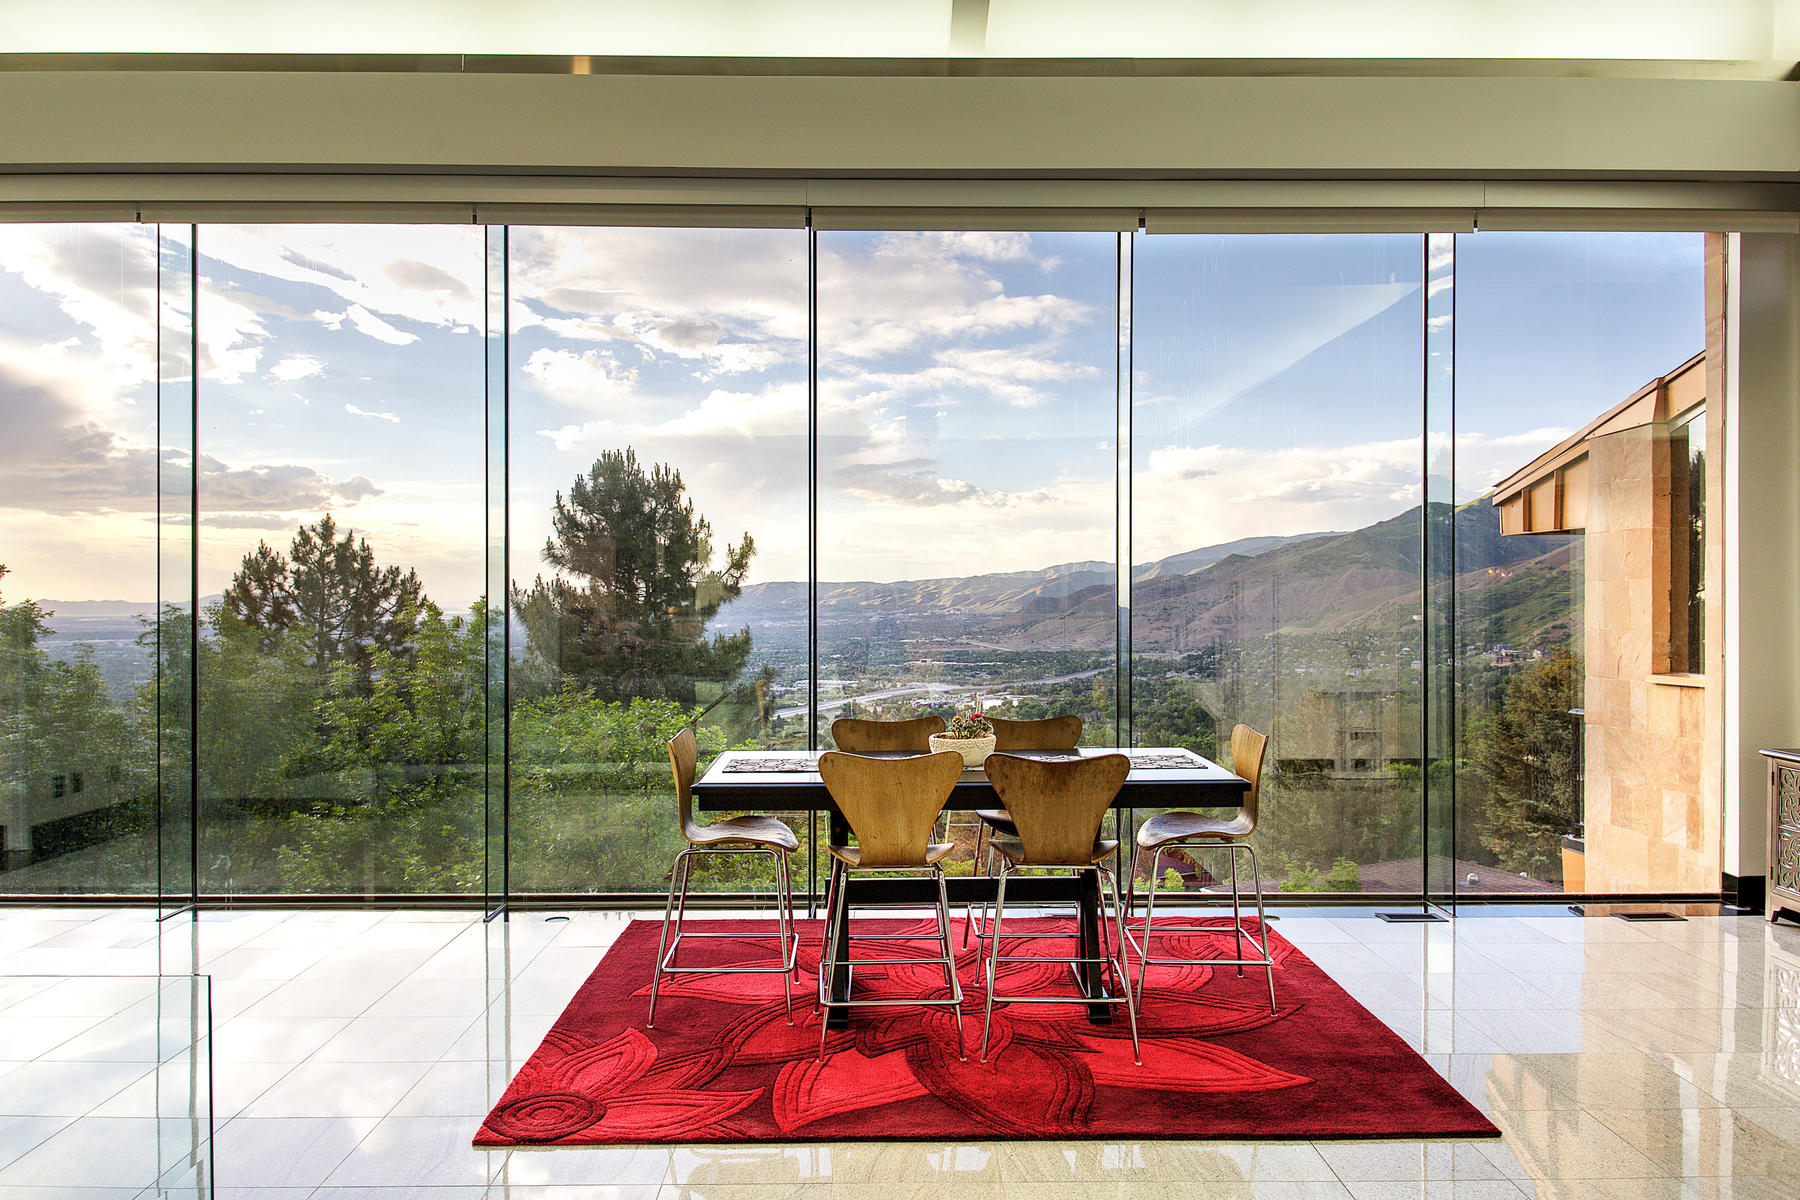 Single Family Homes for Sale at Salt Lake City Contemporary With Incredible Views 3809 E Thousand Oaks Cir Salt Lake City, Utah 84124 United States